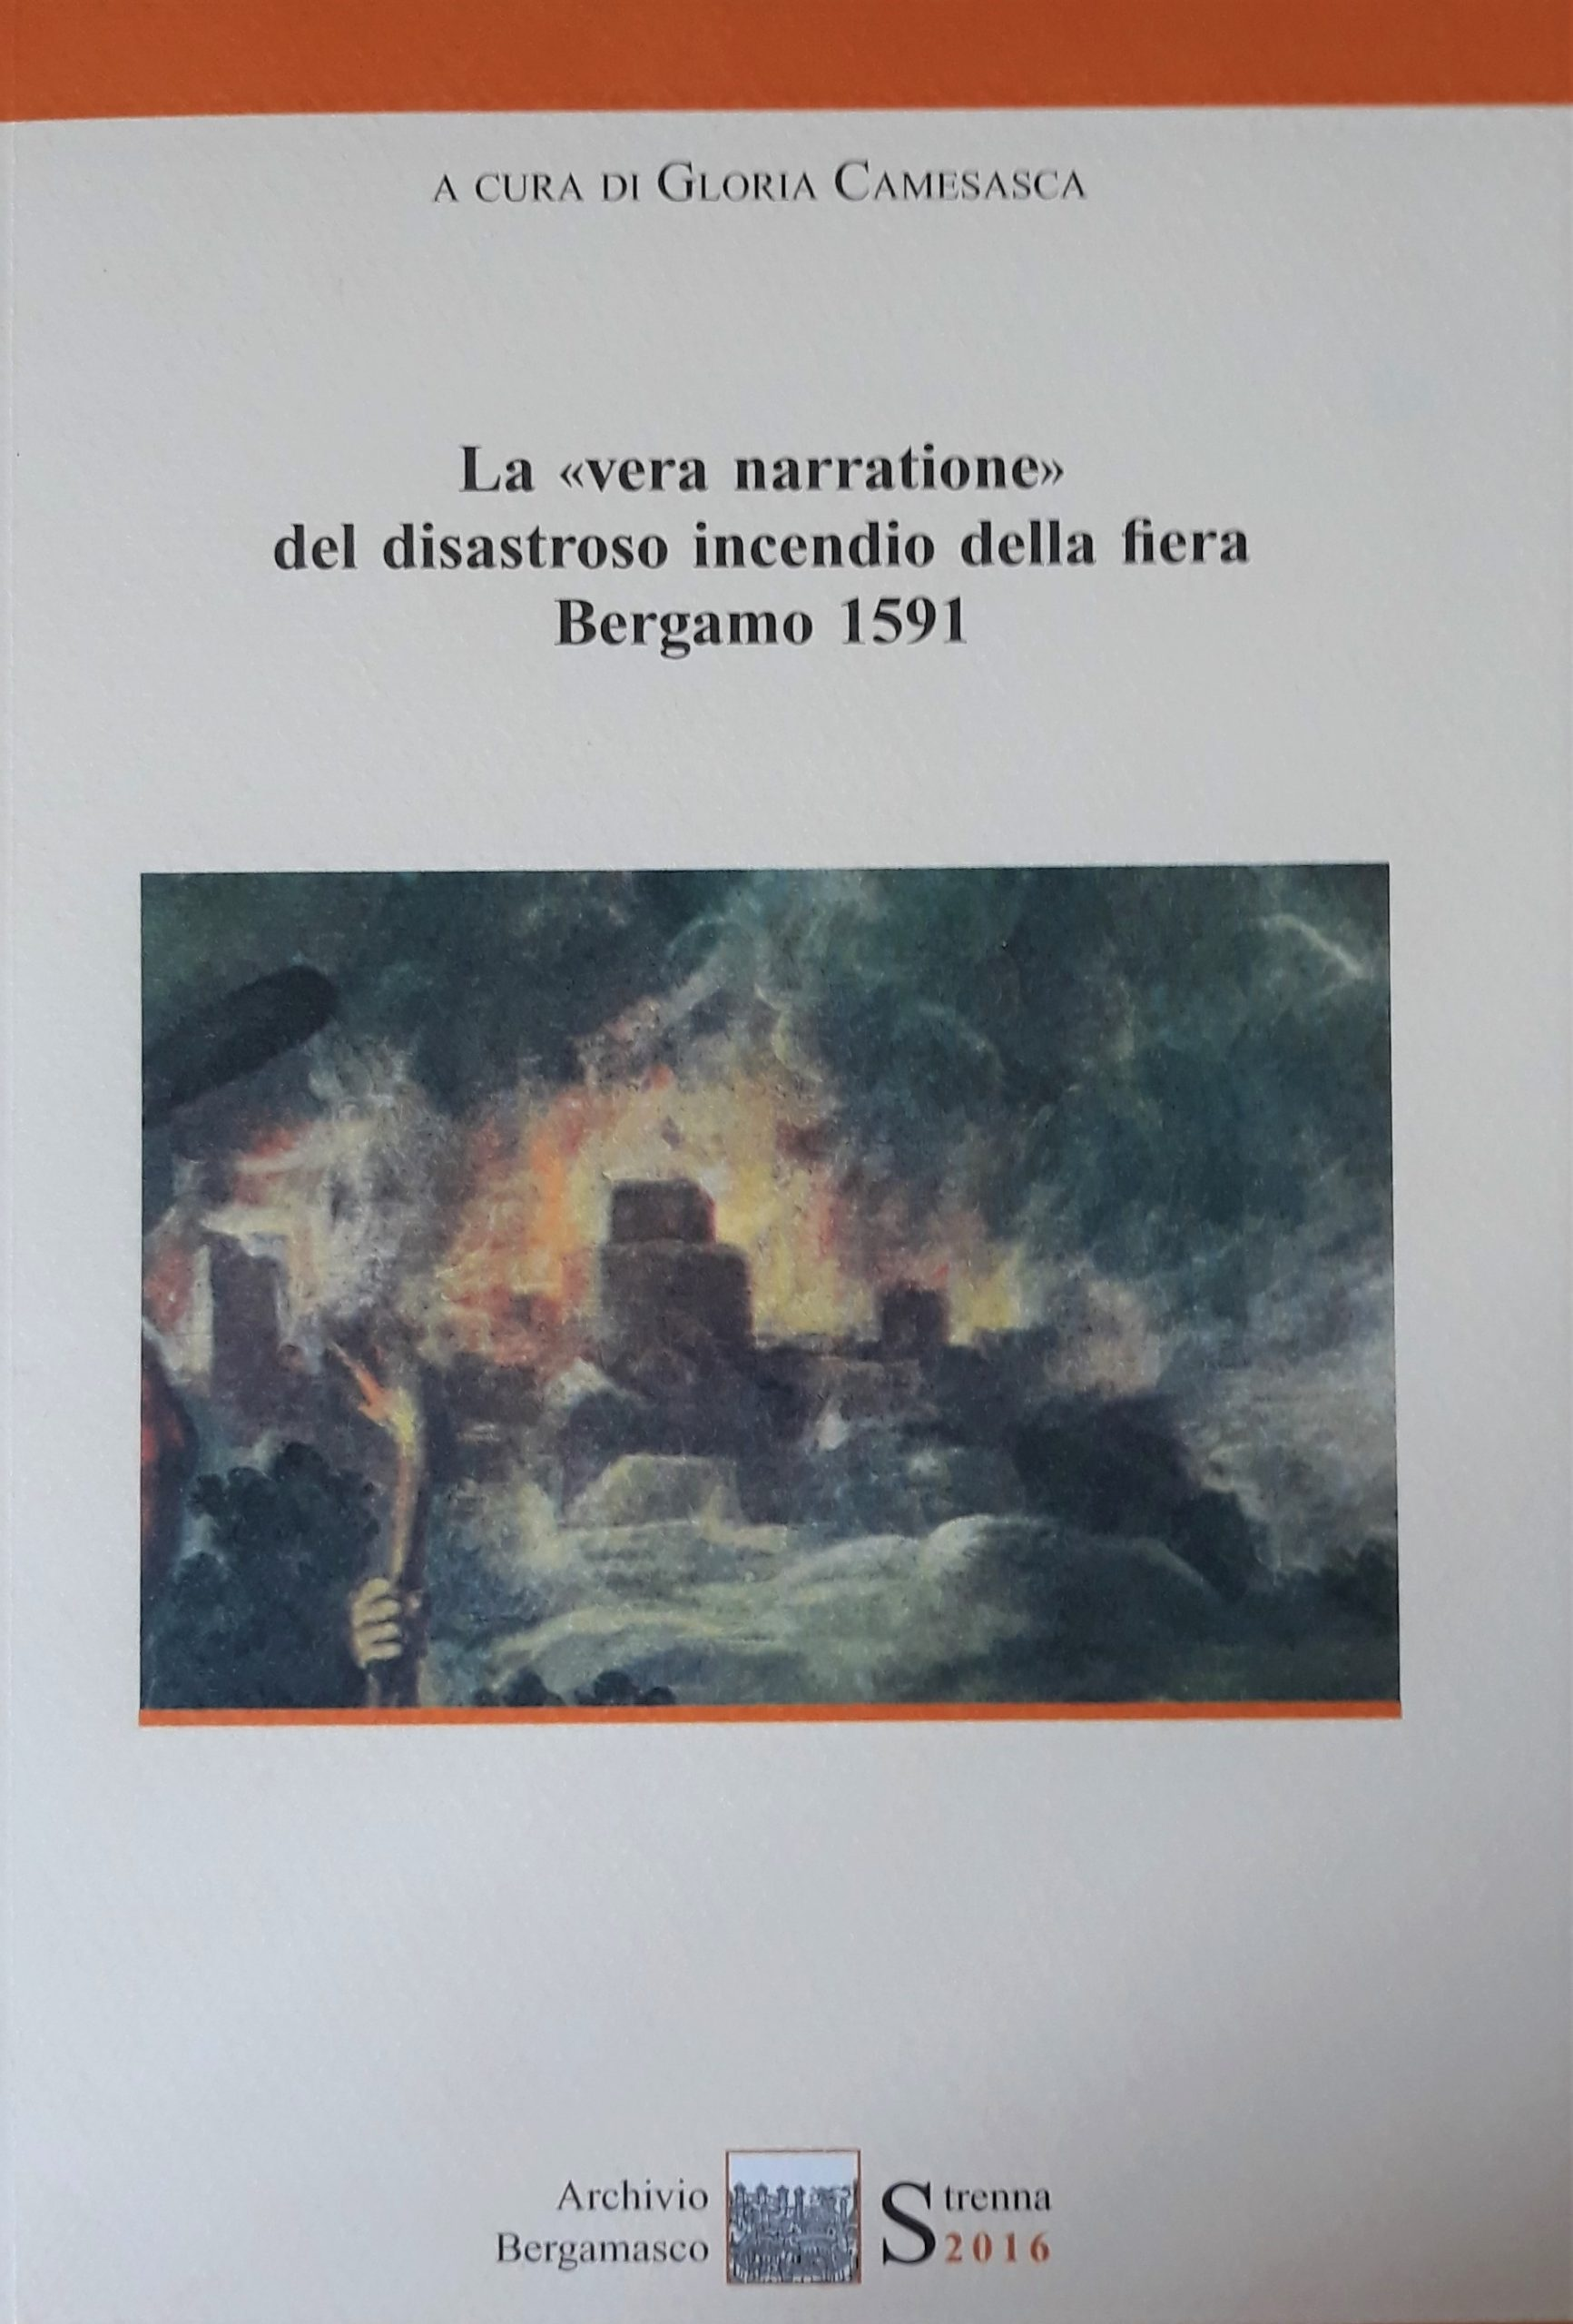 La vera narratione del disastroso incendio della fiera di Bergamo